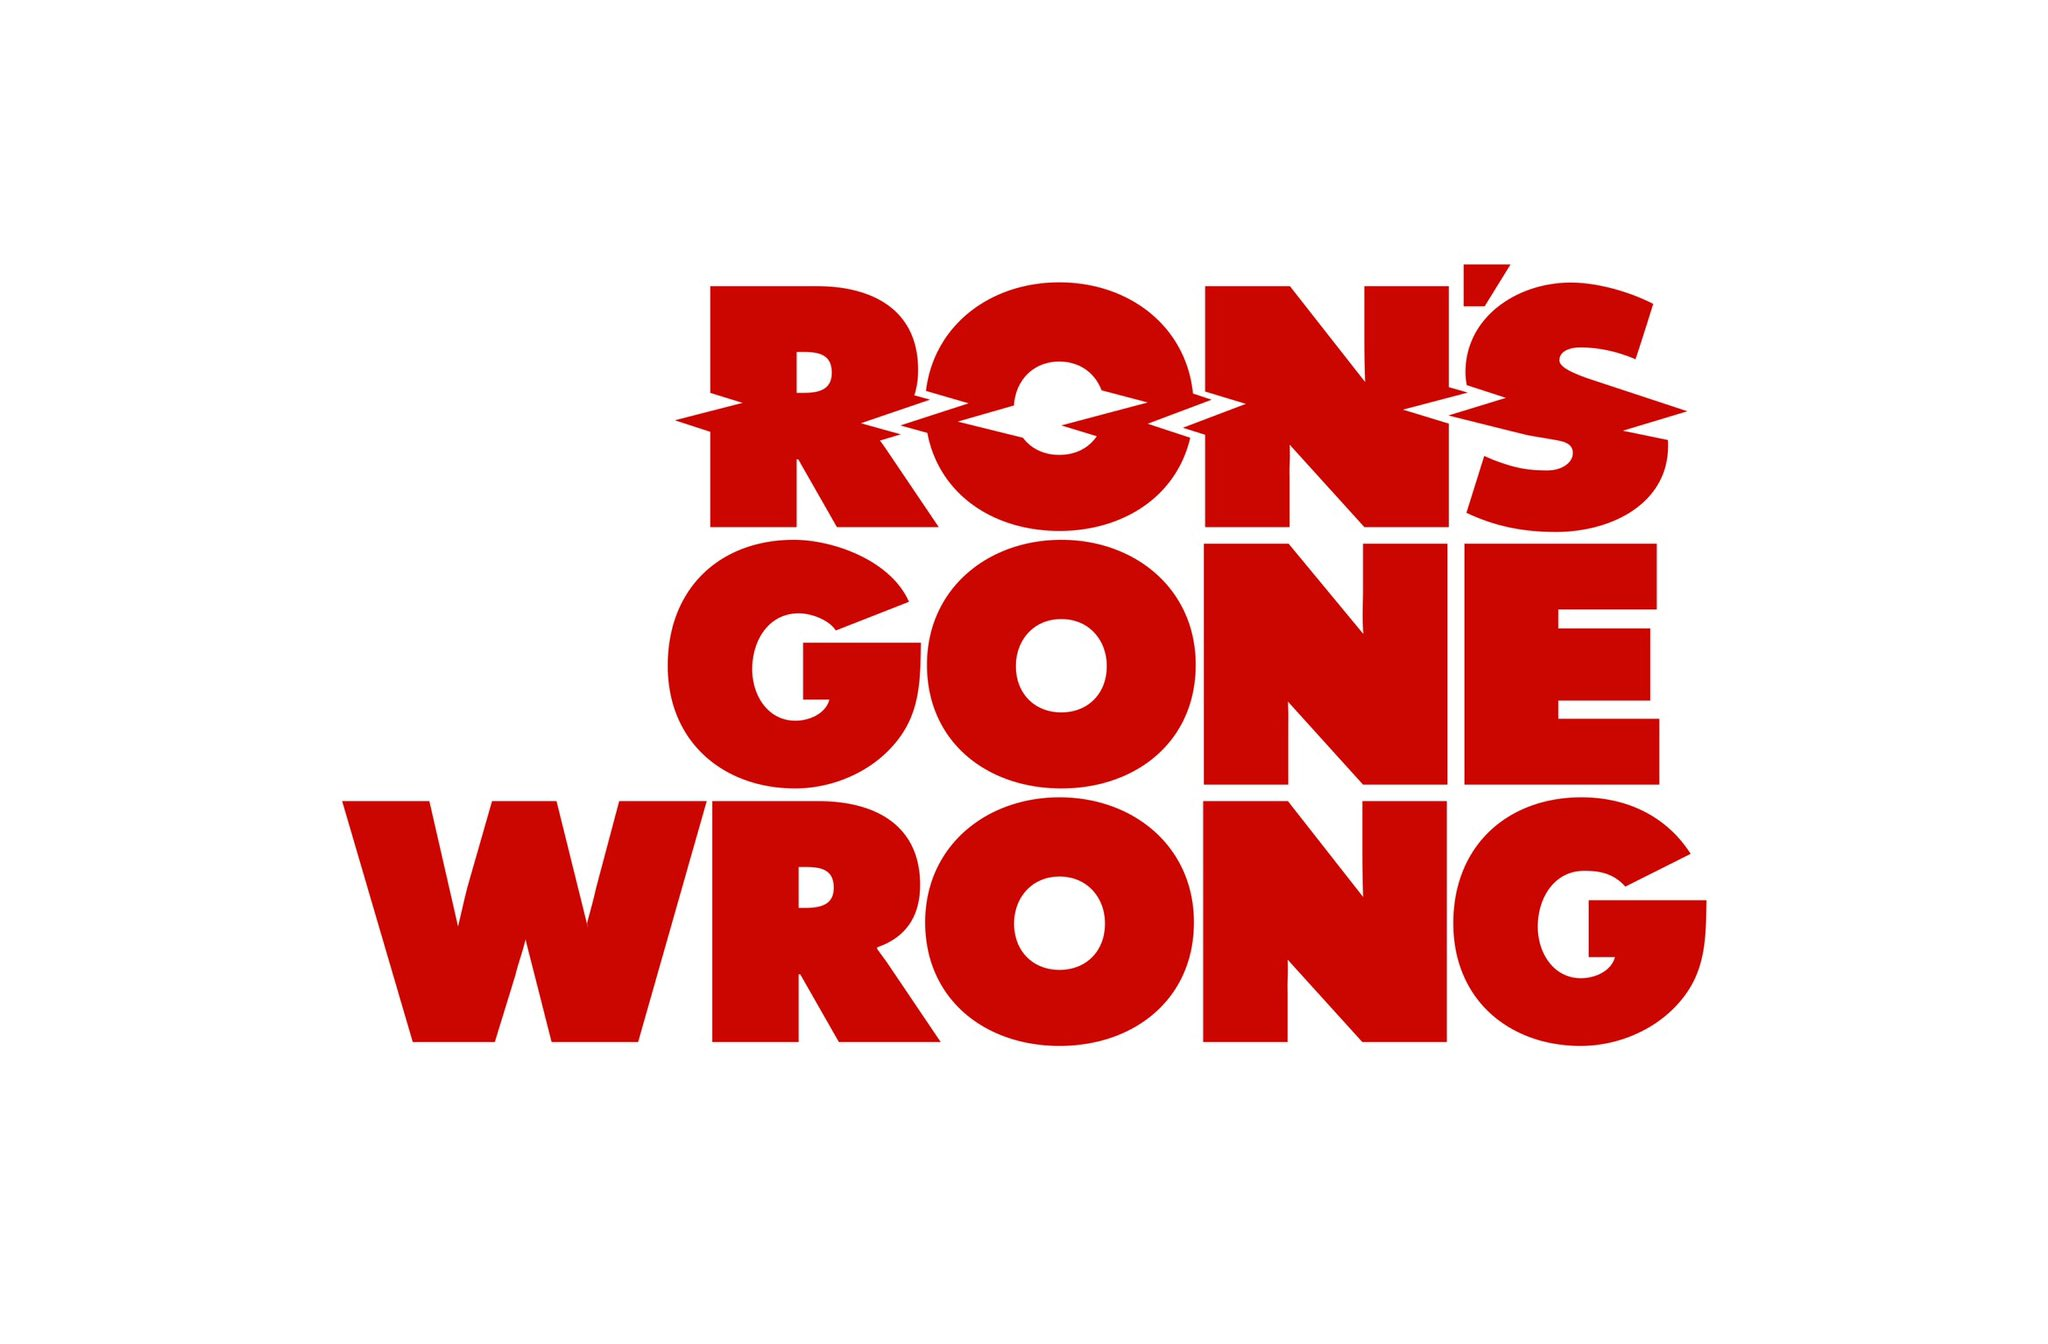 'Ron's Gone Wrong' - landscape artwork